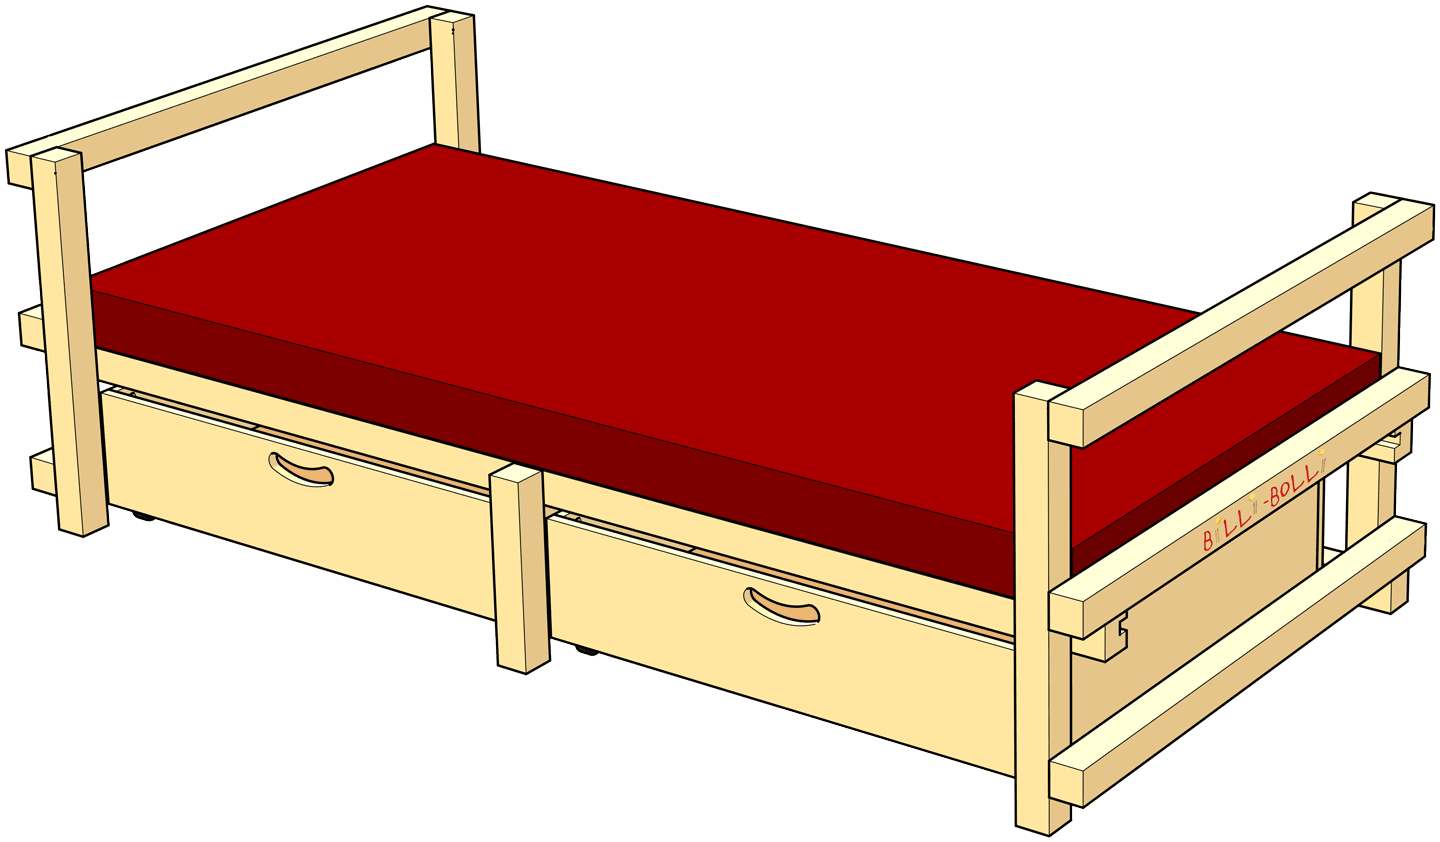 Low Youth Bed Type C: with tall sides